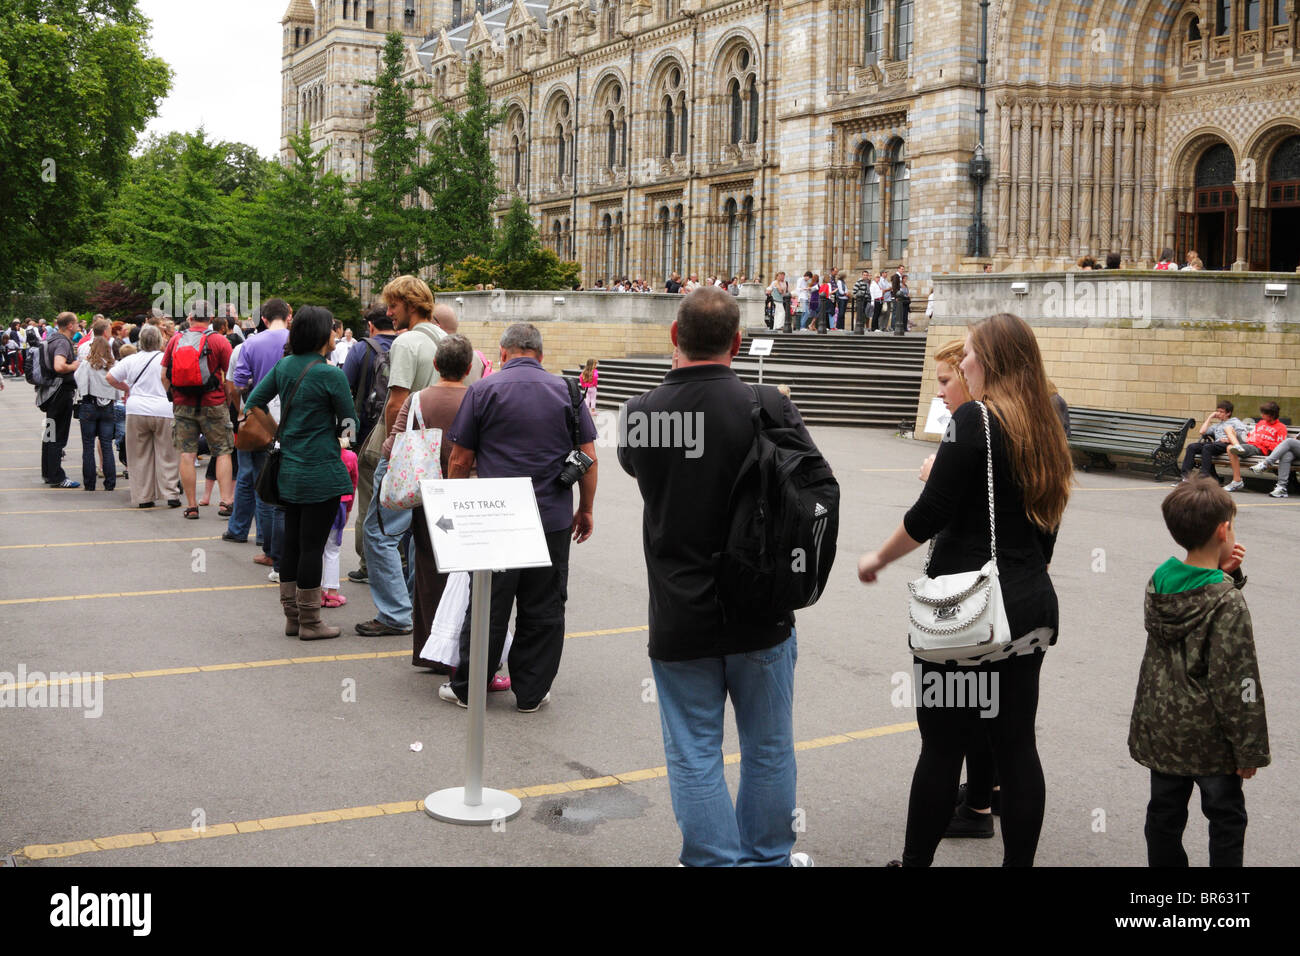 Queue of people waiting to enter Natural History Museum, London - Stock Image